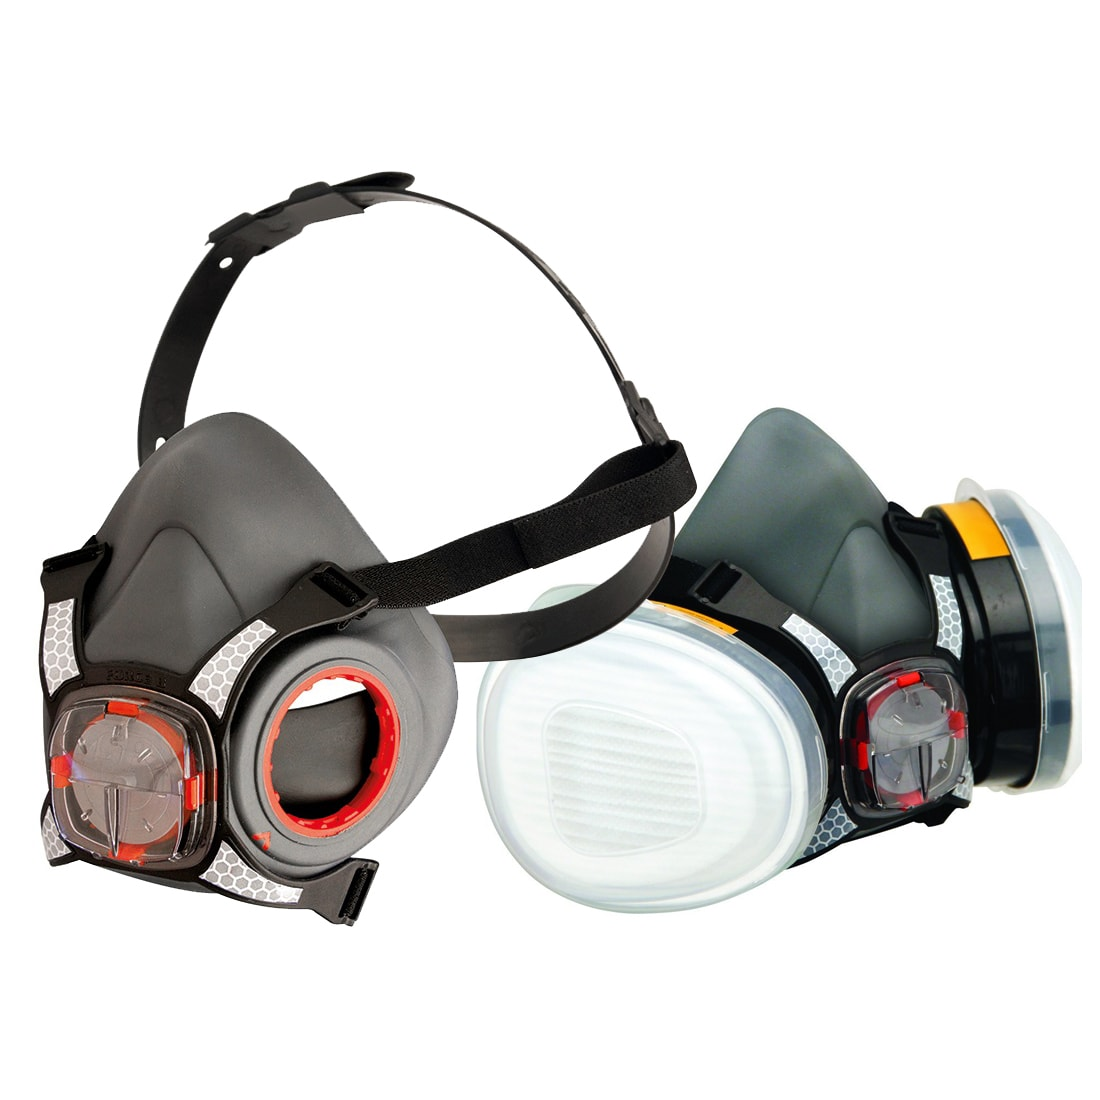 Half 8 Valve Filters Force A1p2 Mask Respirator And Typhoon Of Twin Pair With